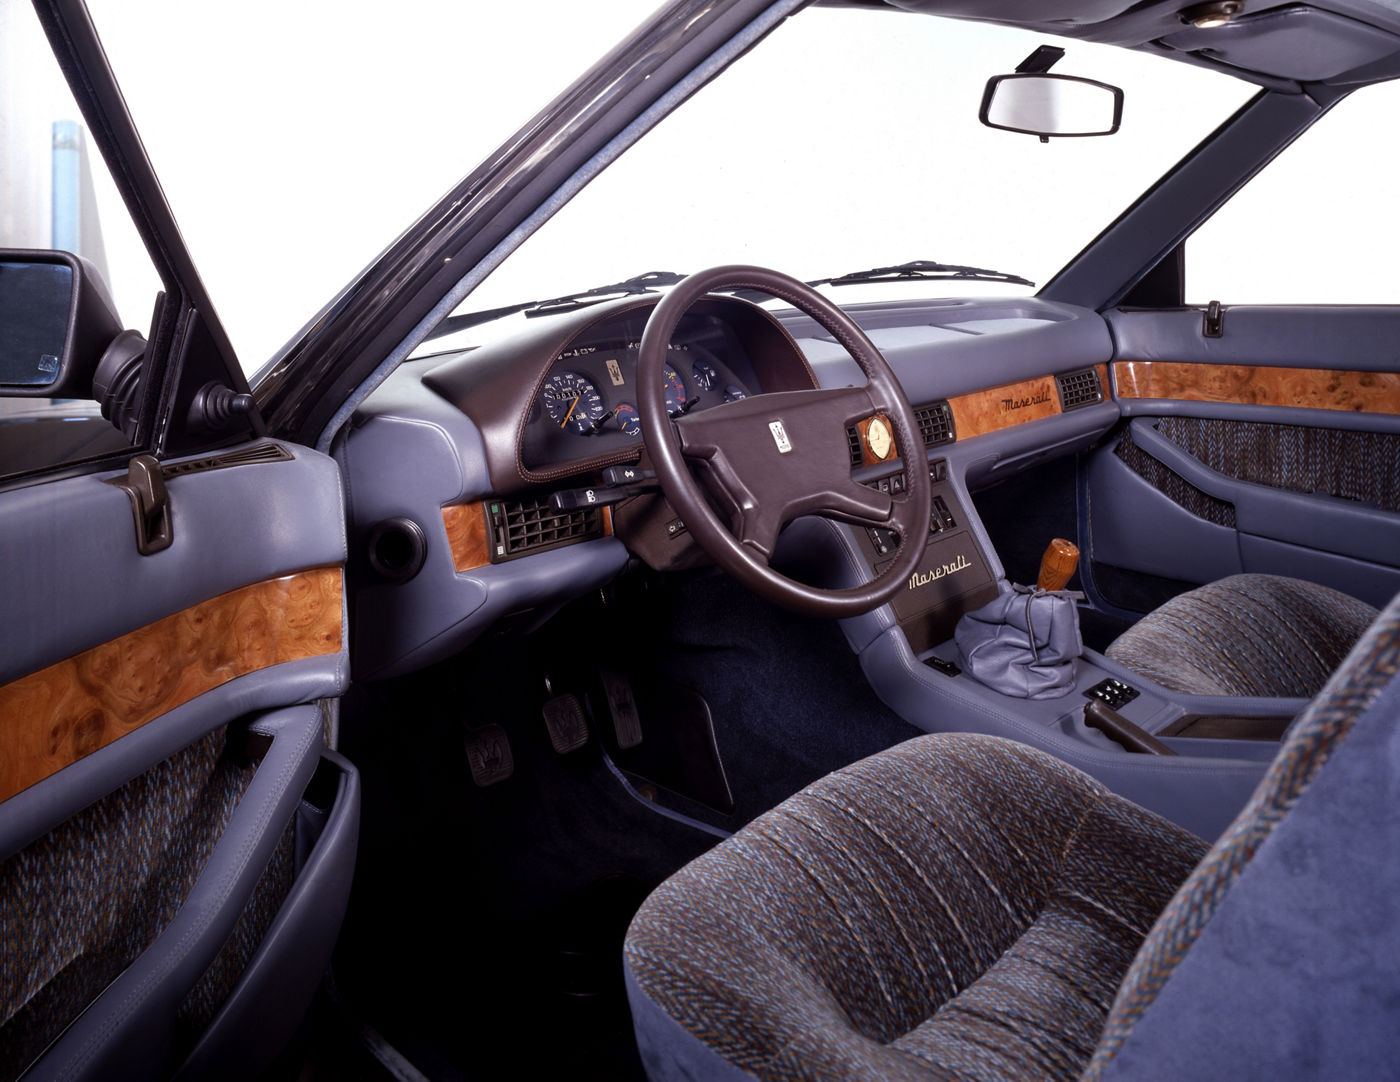 1983 Maserati 425 - interior view of the classic car model